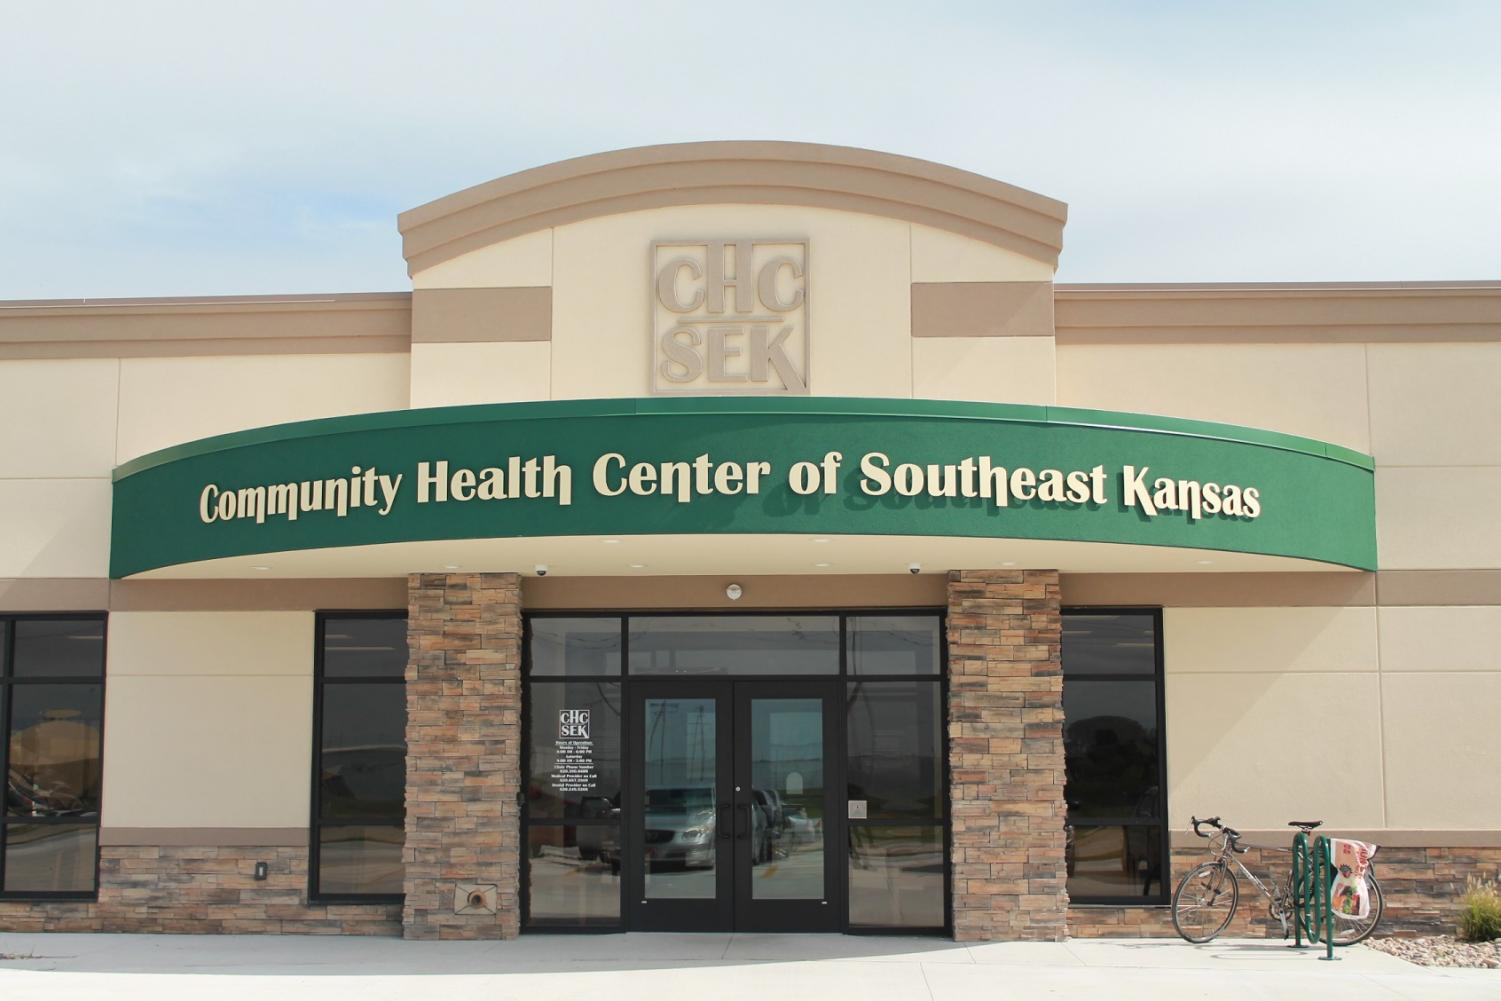 The Community Health Center of Southeast Kansas provides affordable health care for all, including the uninsured.